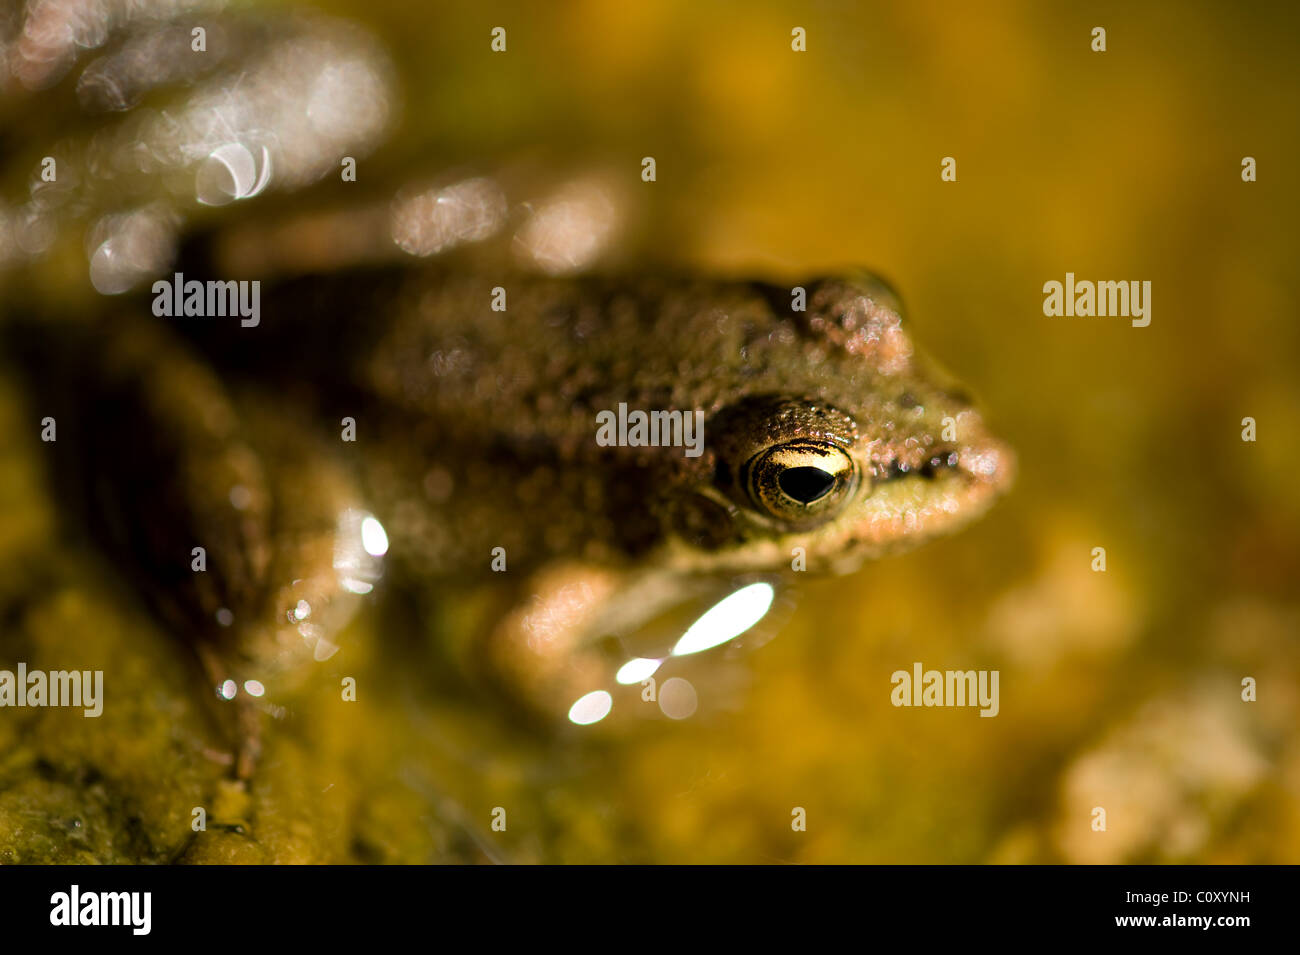 Macro image of pool frogs eye partially above water level in pond - Stock Image